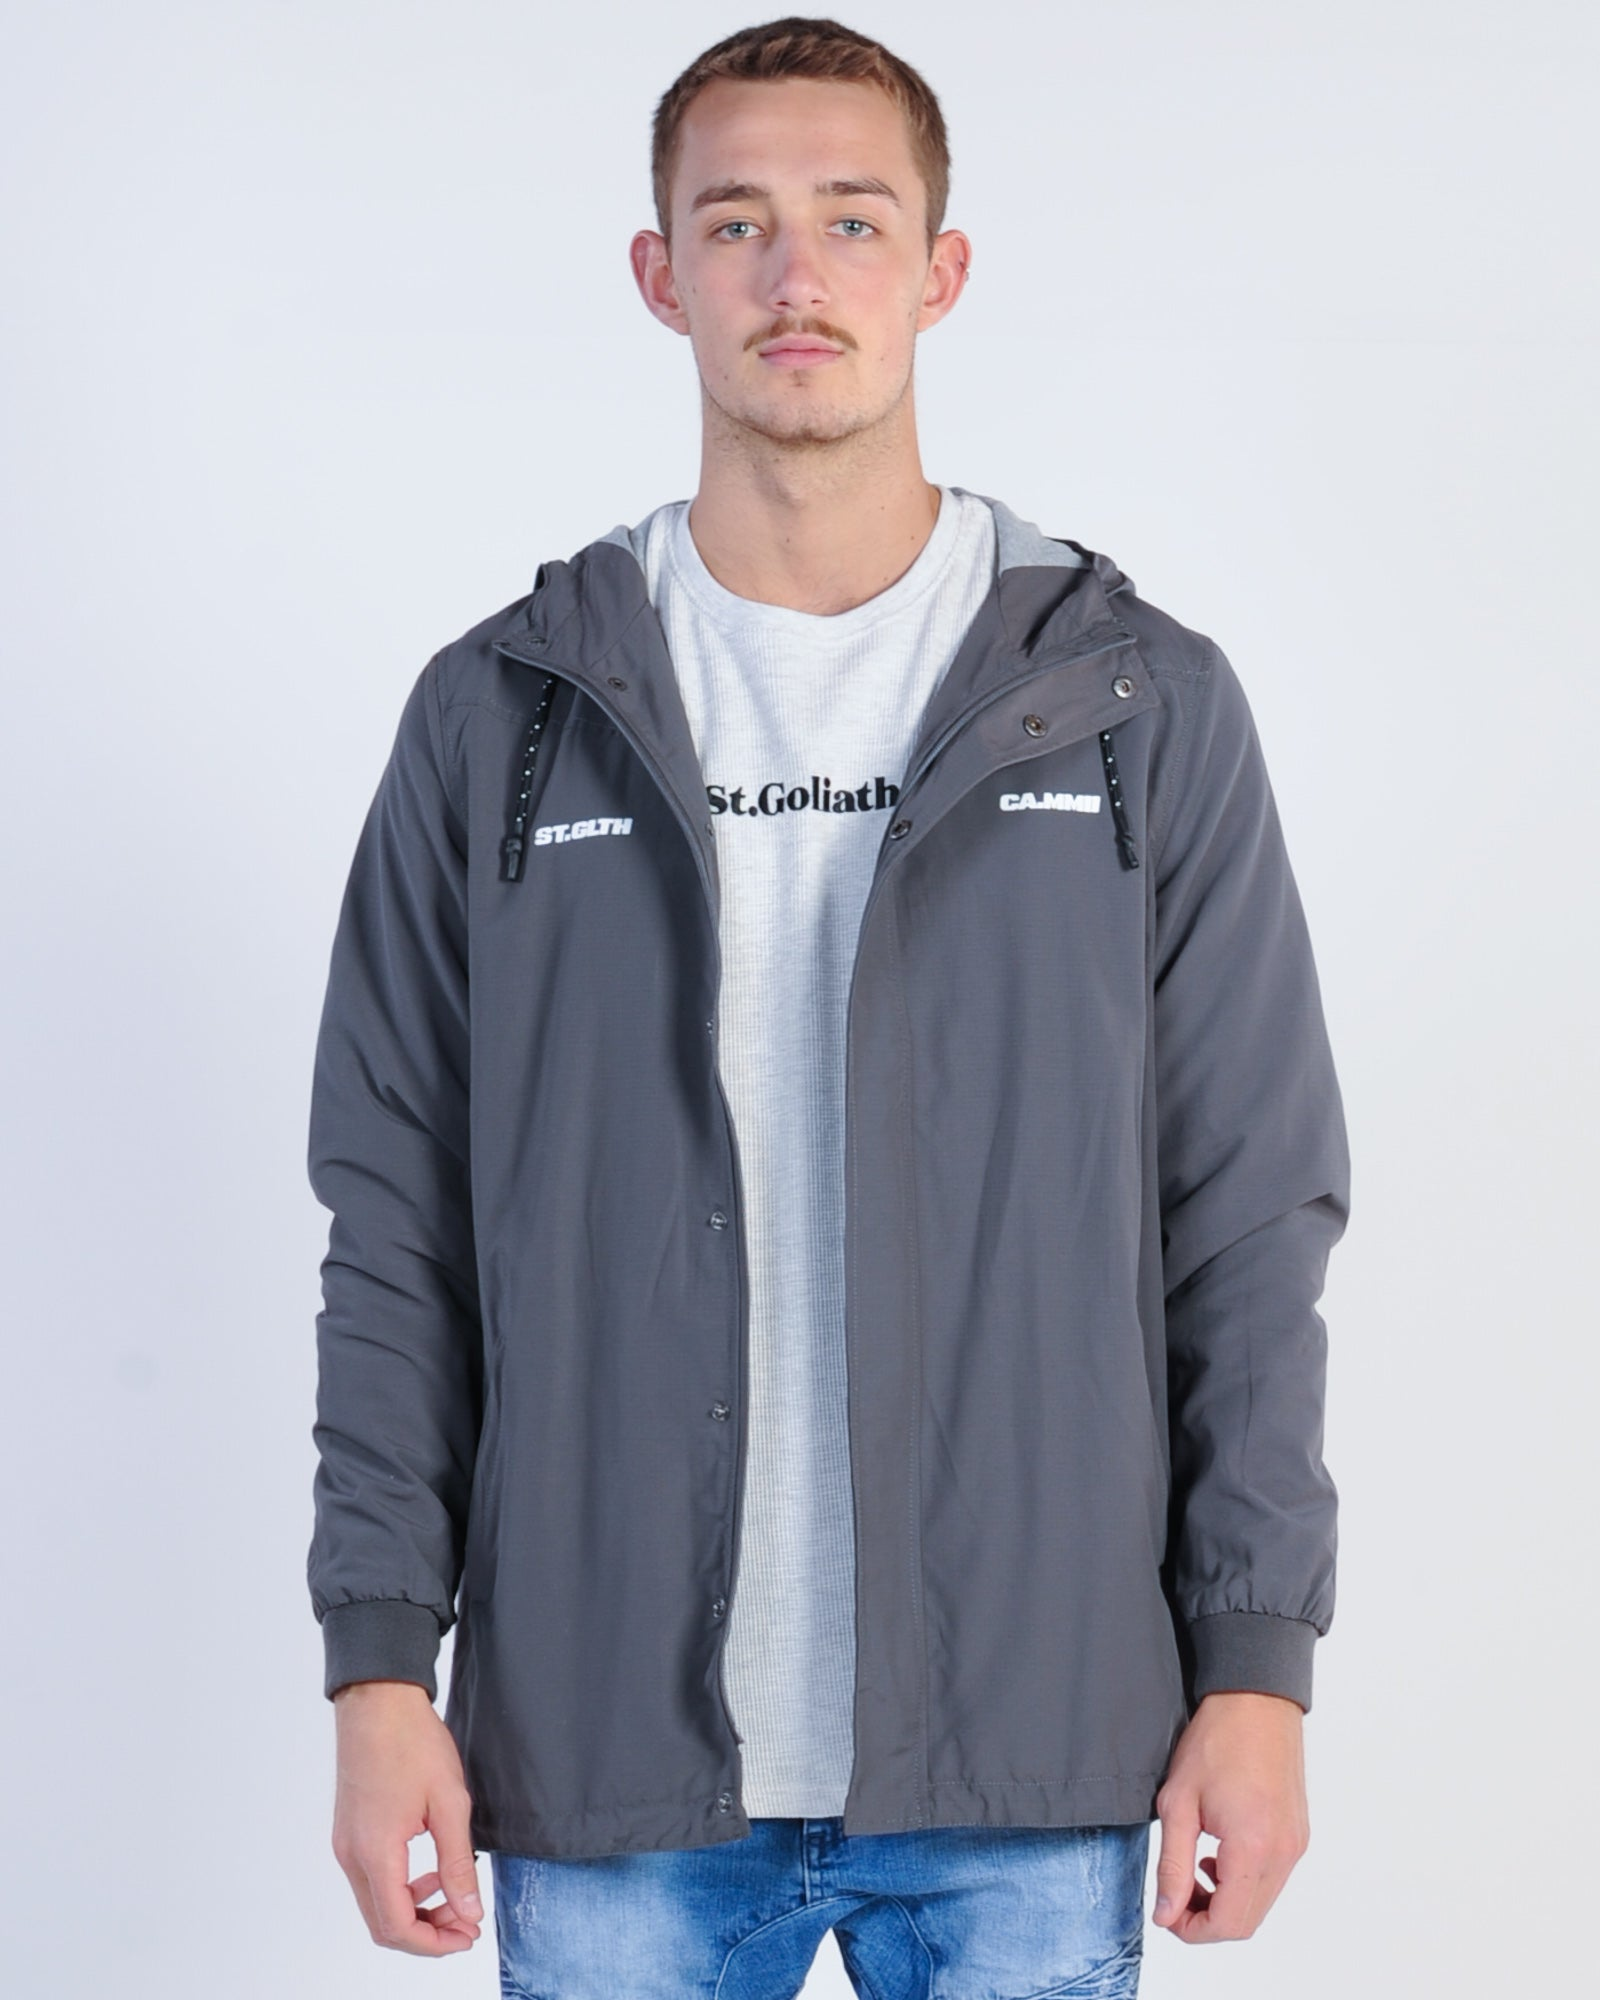 St. Goliath Covered 4 Hooded Jacket - Charcoal